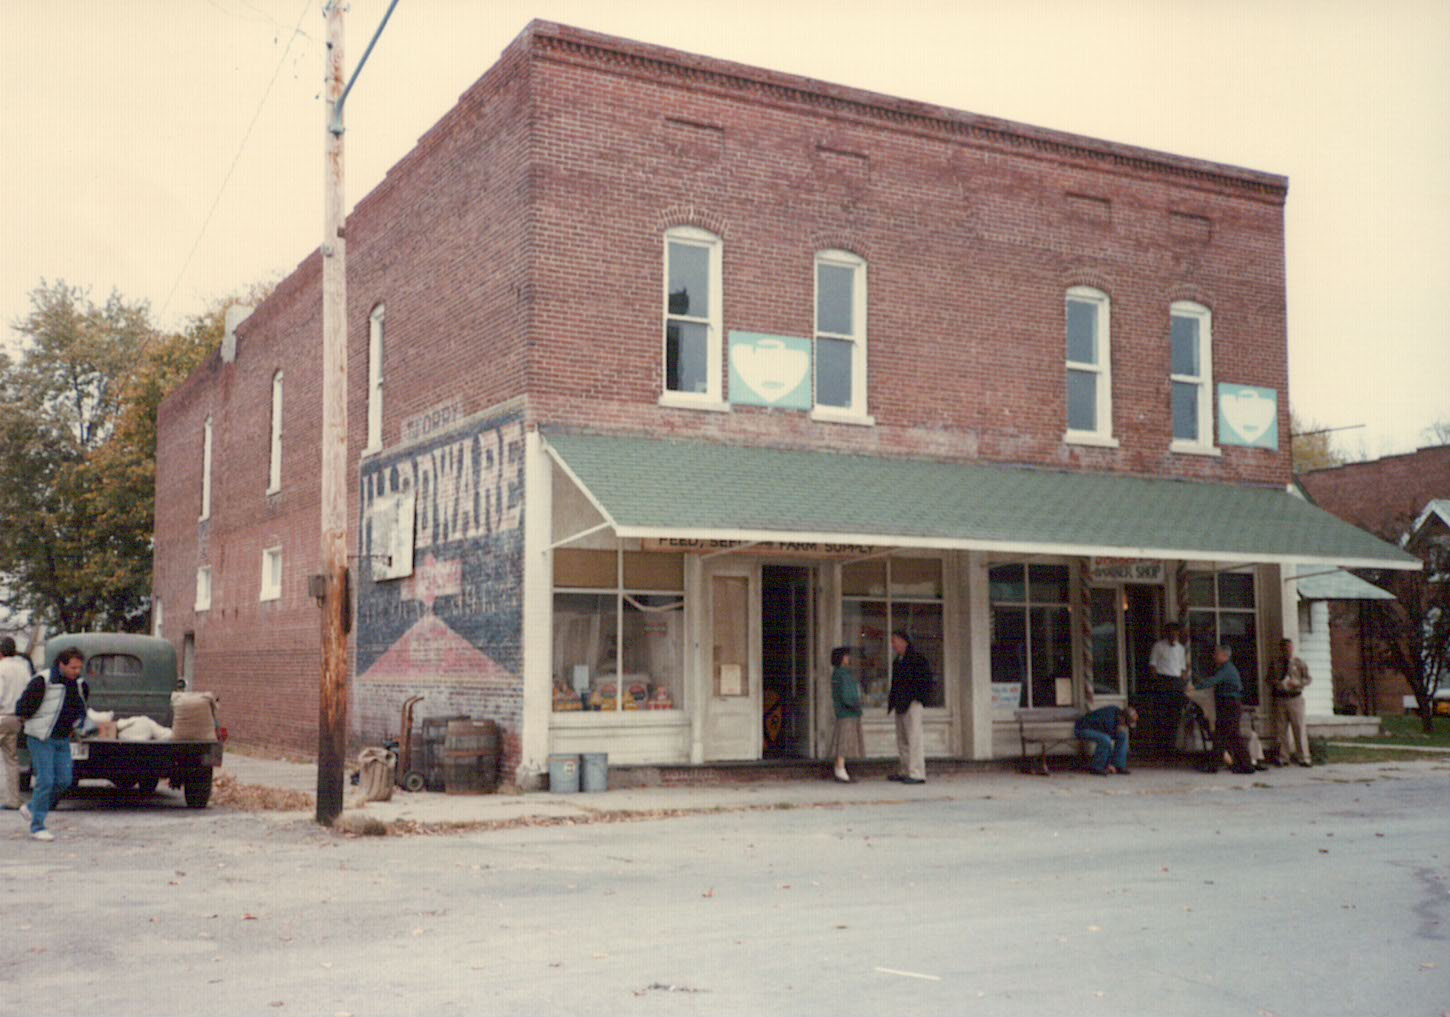 Director David Anspaugh (far left), Barbara Hershey and Hackman (center), and some townspeople in front of the feed-and-grain and barbershop, October 23, 1985